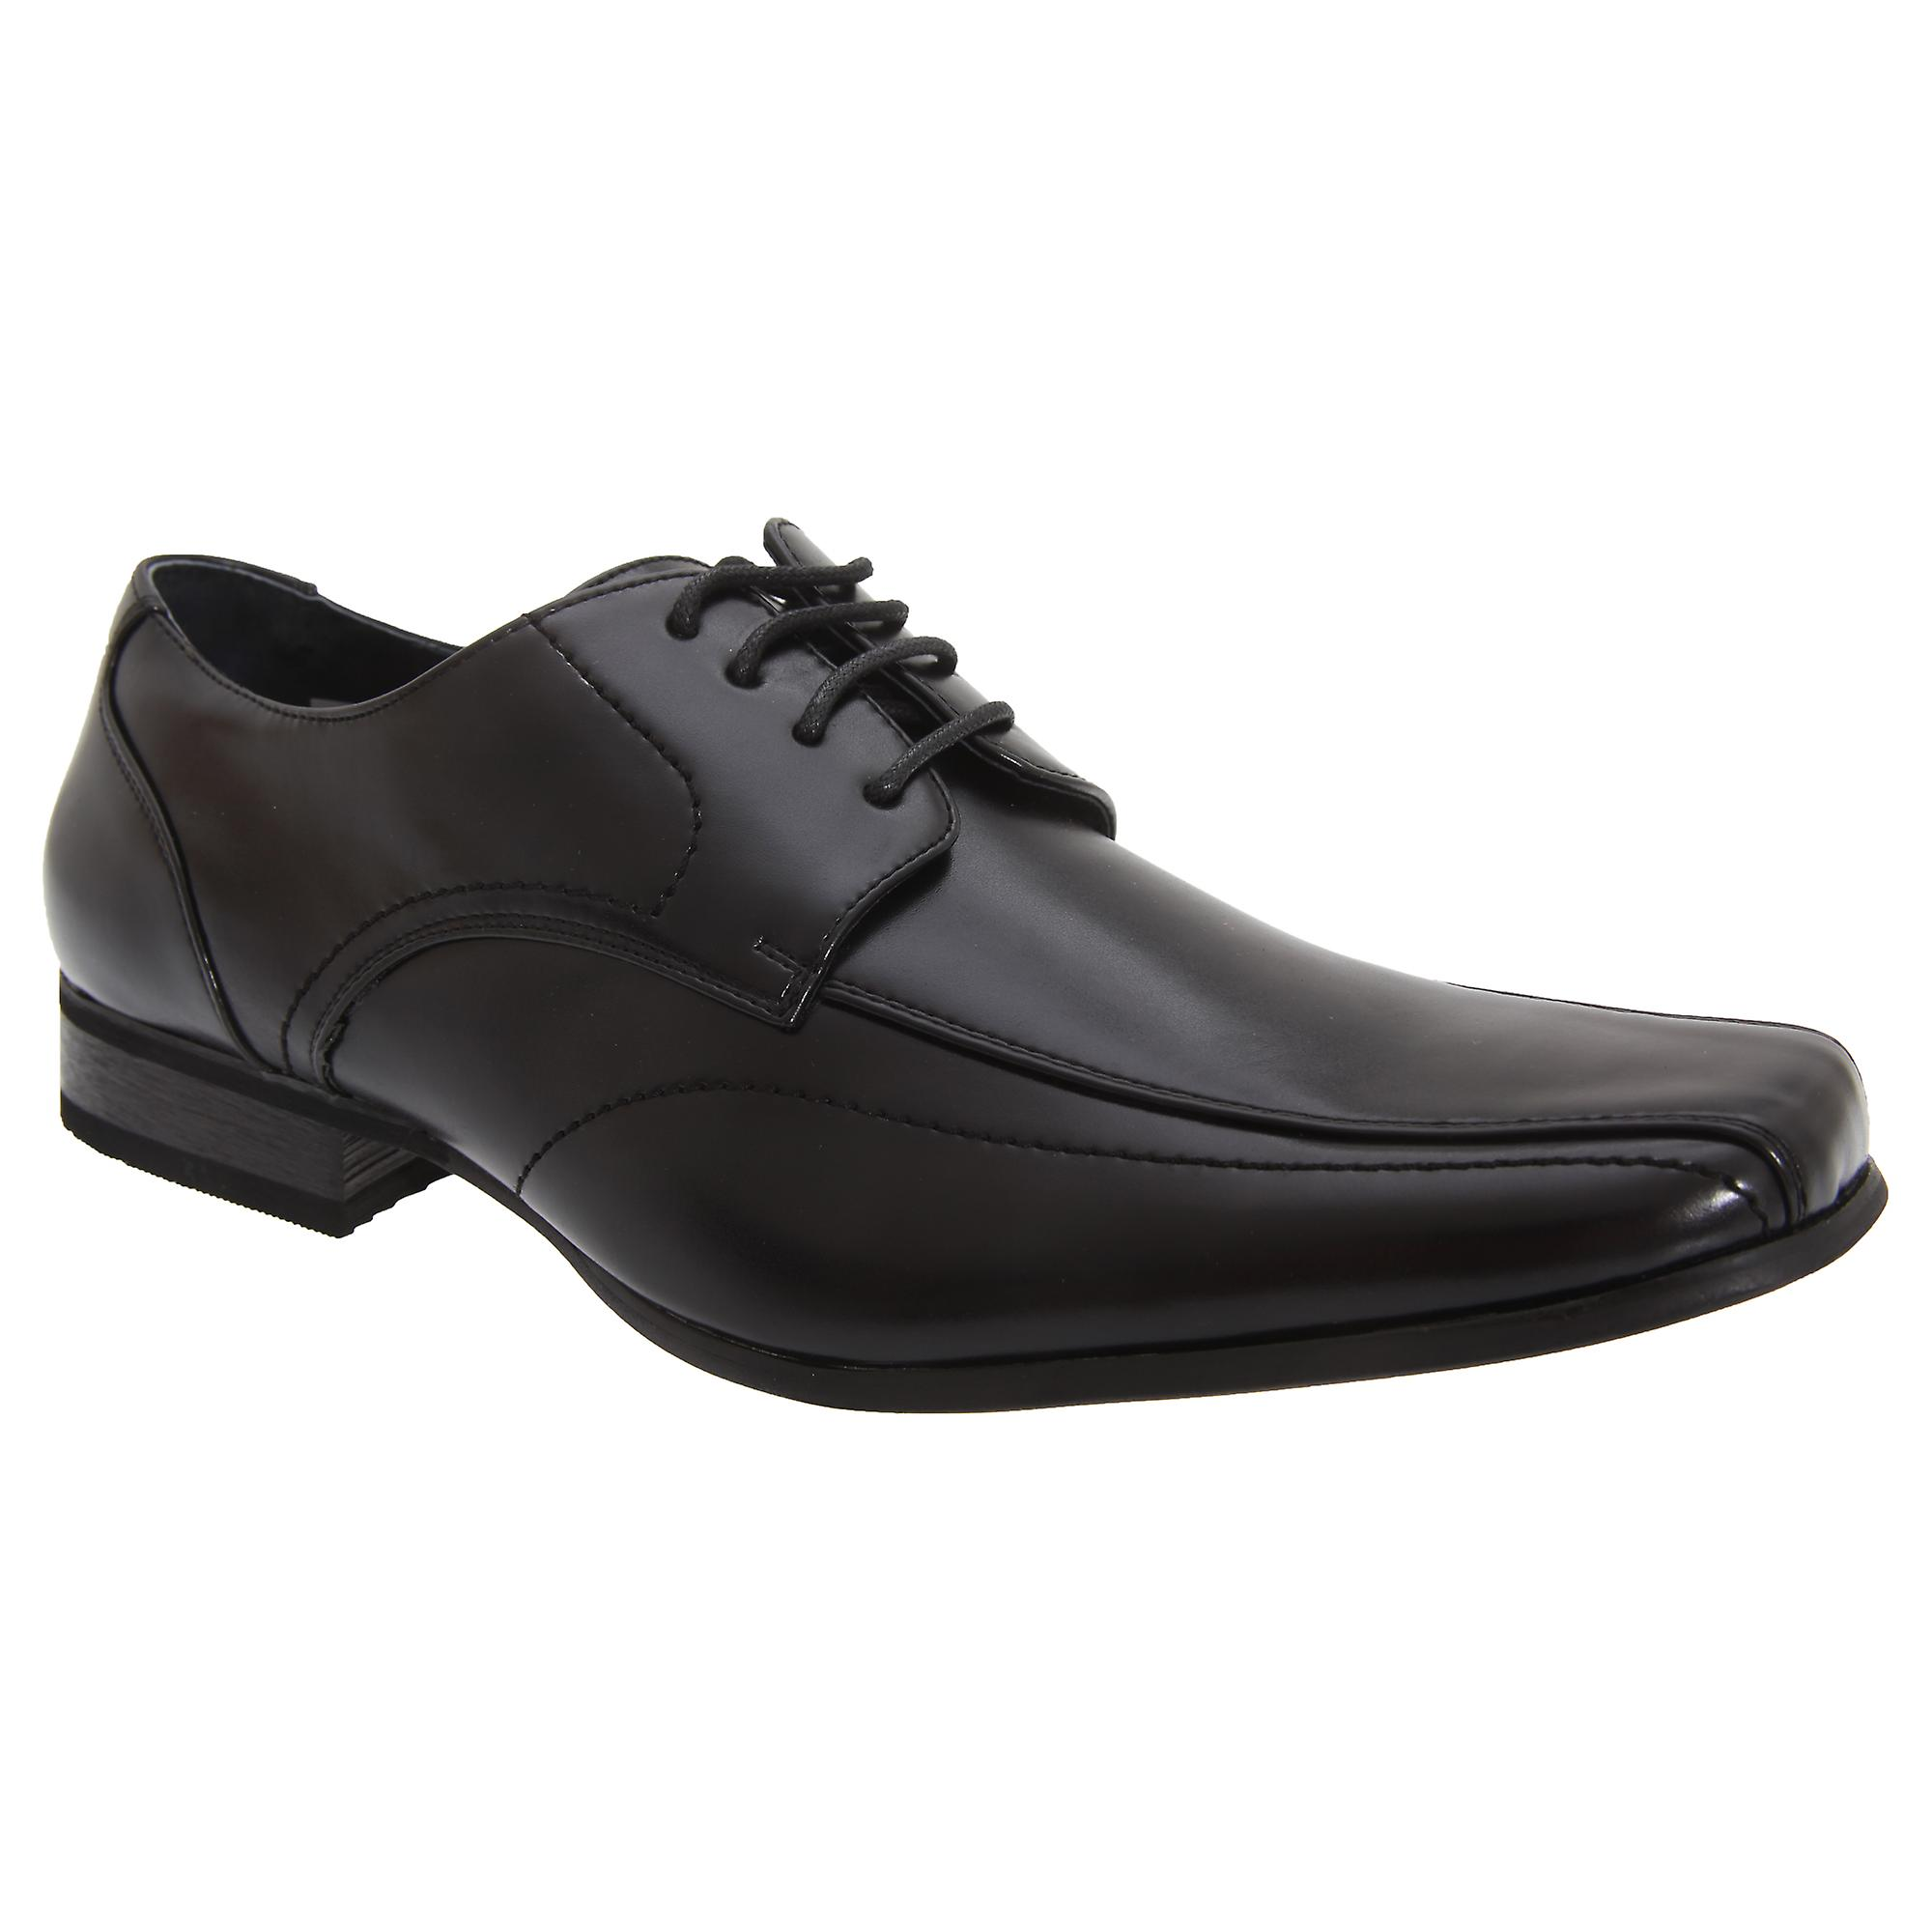 Goor Mens Leather Lace-Up Tramline Gibson Dress Shoes